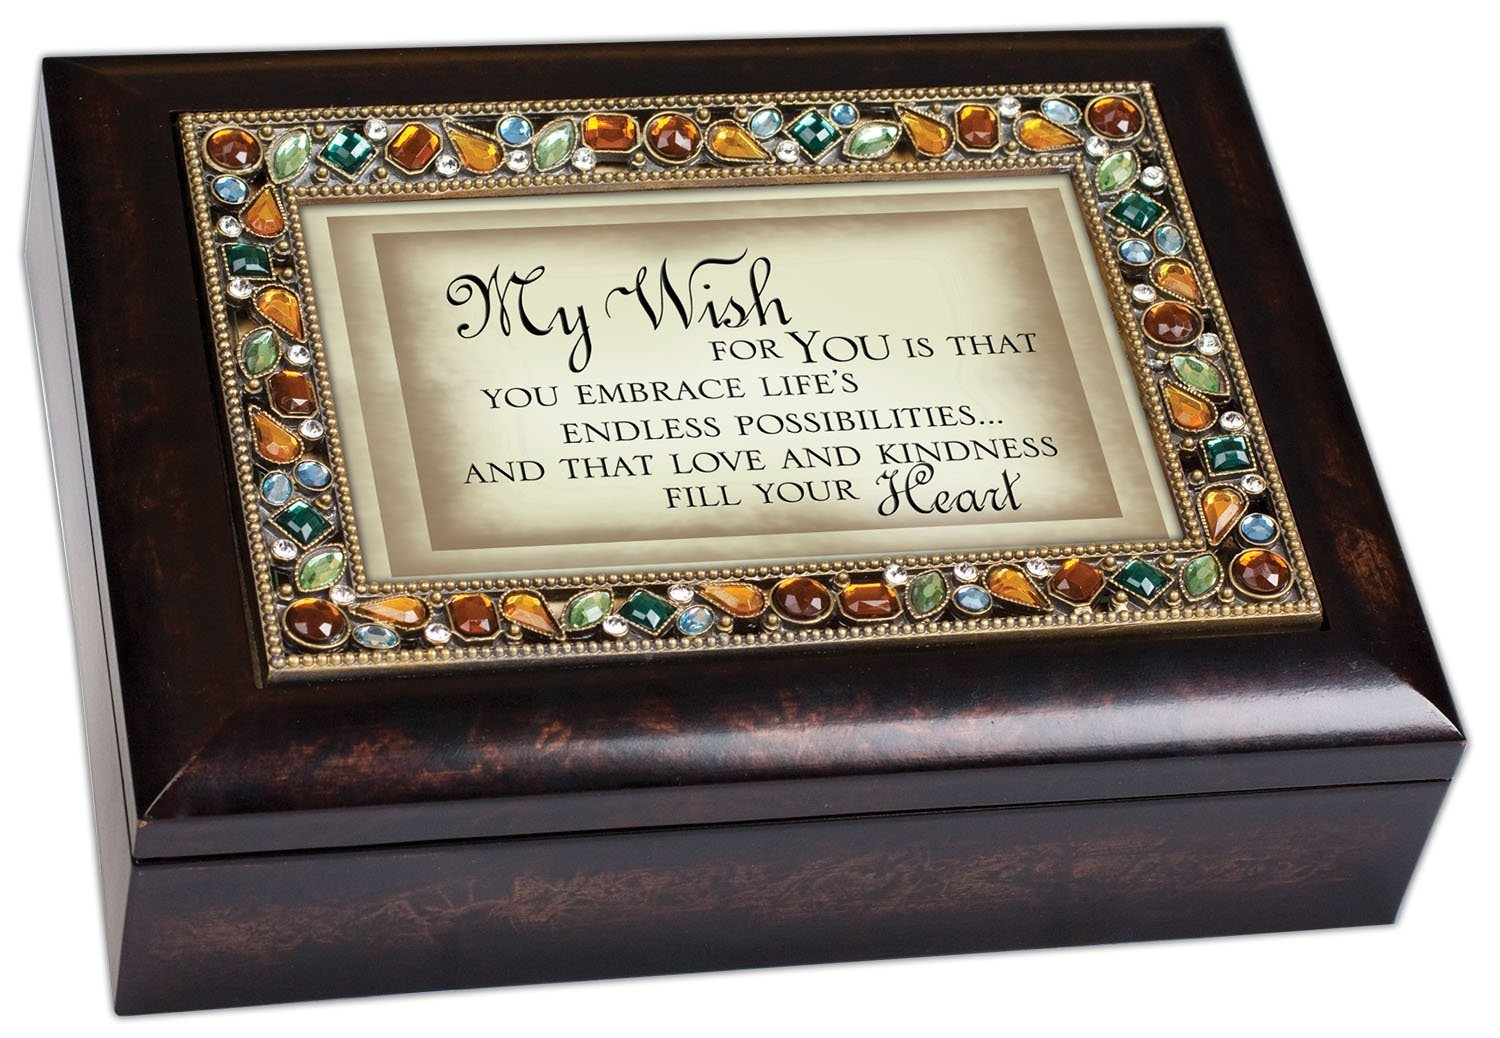 My Wish for You Inspirational Italian Style Burlwood Finish Decorative Jewel Lid Musical Music Jewelry Box - Plays Edelweiss by Cottage Garden